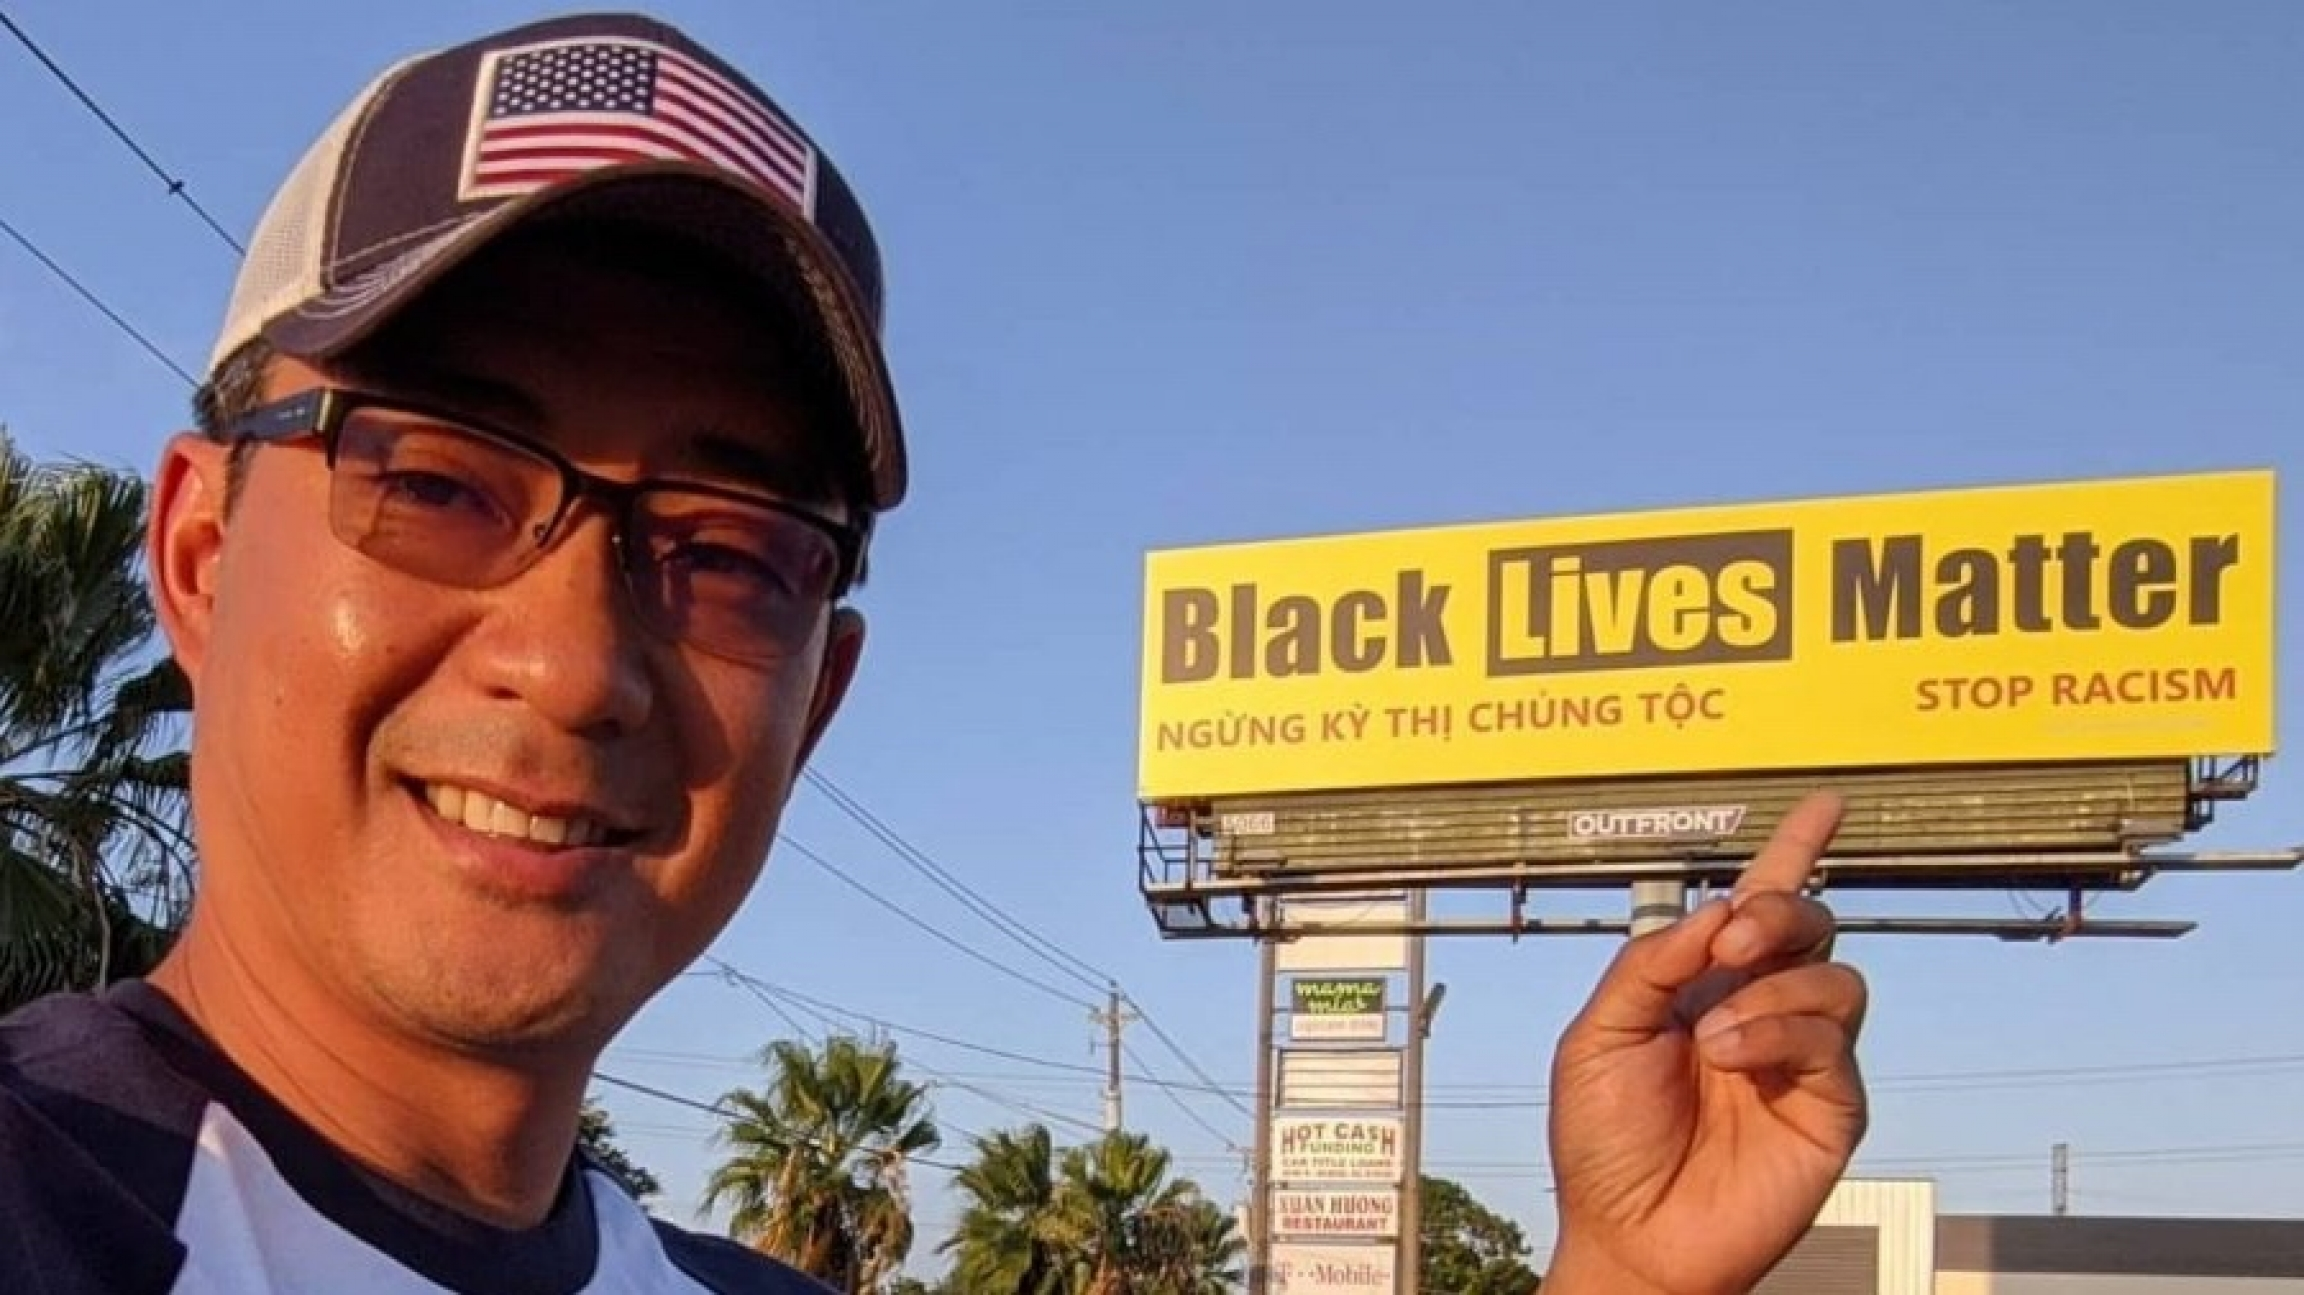 A man points his finger at a yellow billboard with black writing in Vietnamese and English